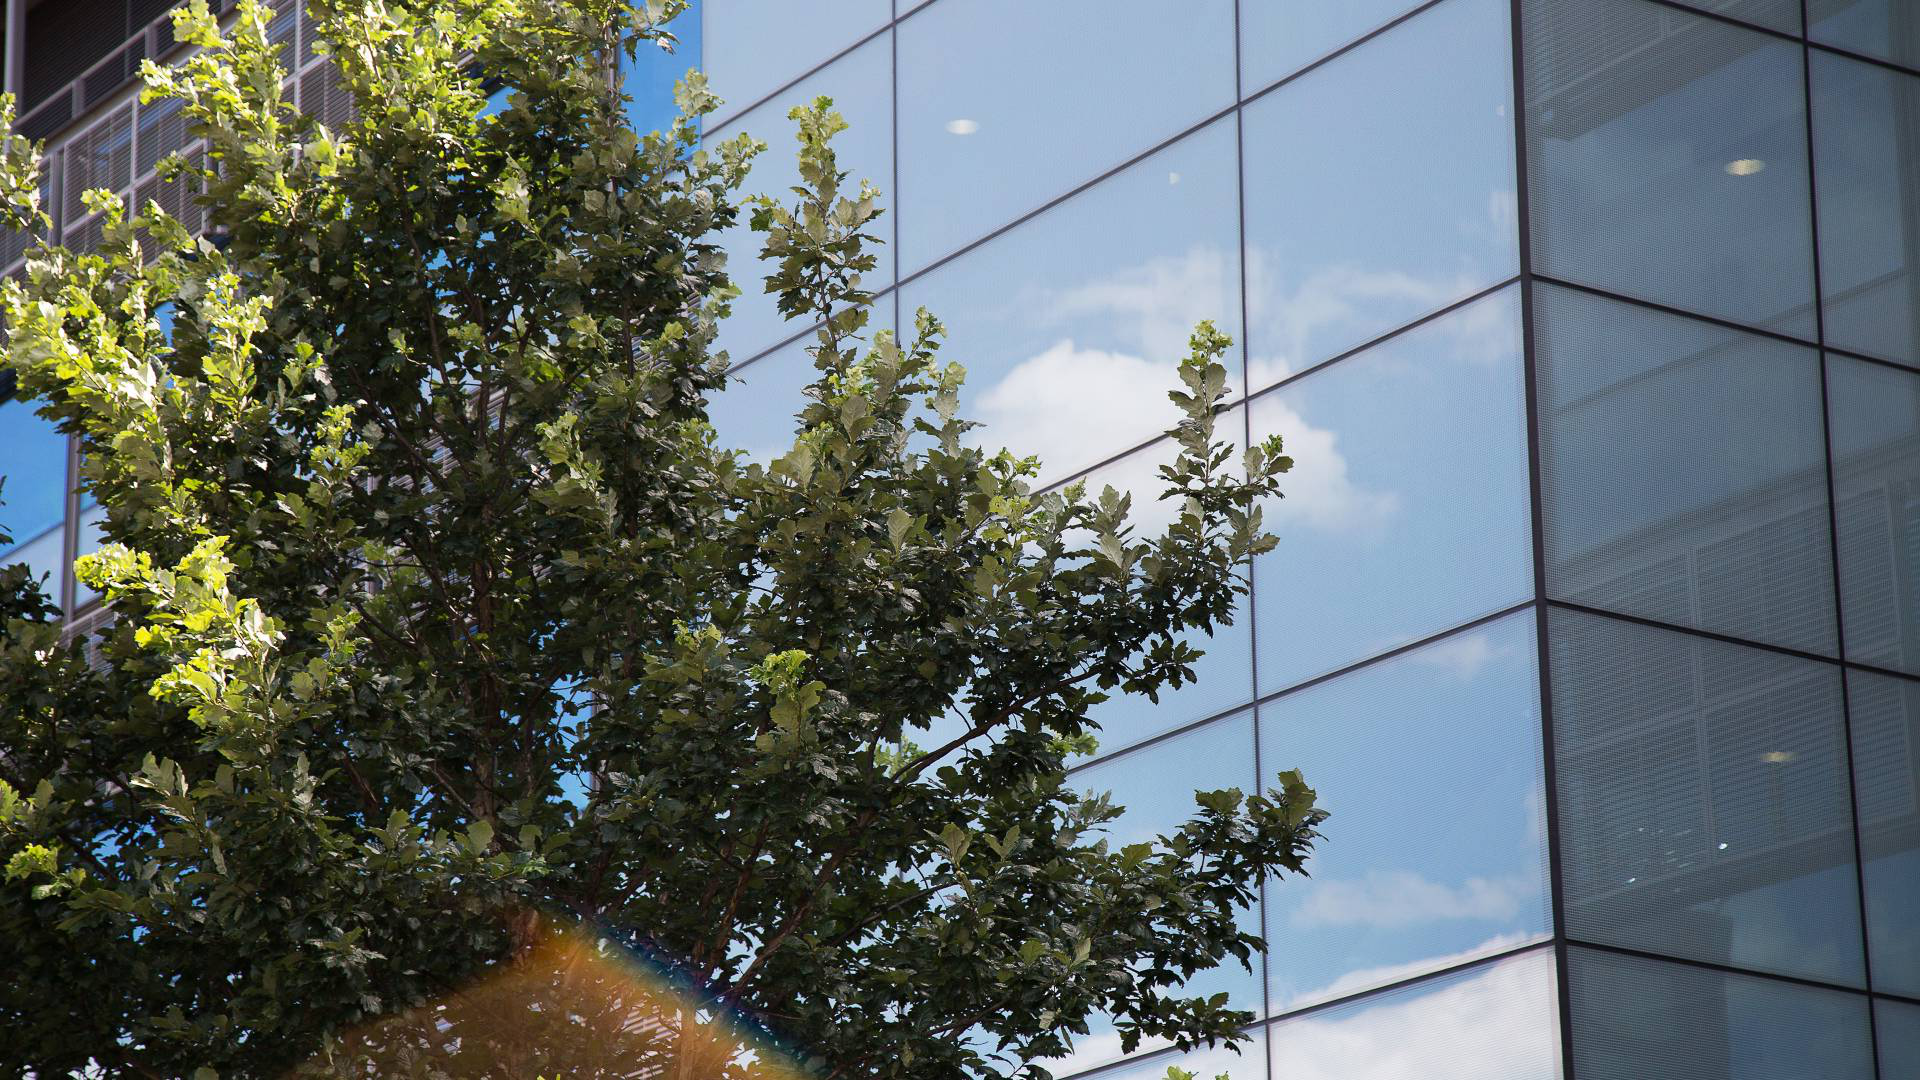 glass facade with clouds and tree